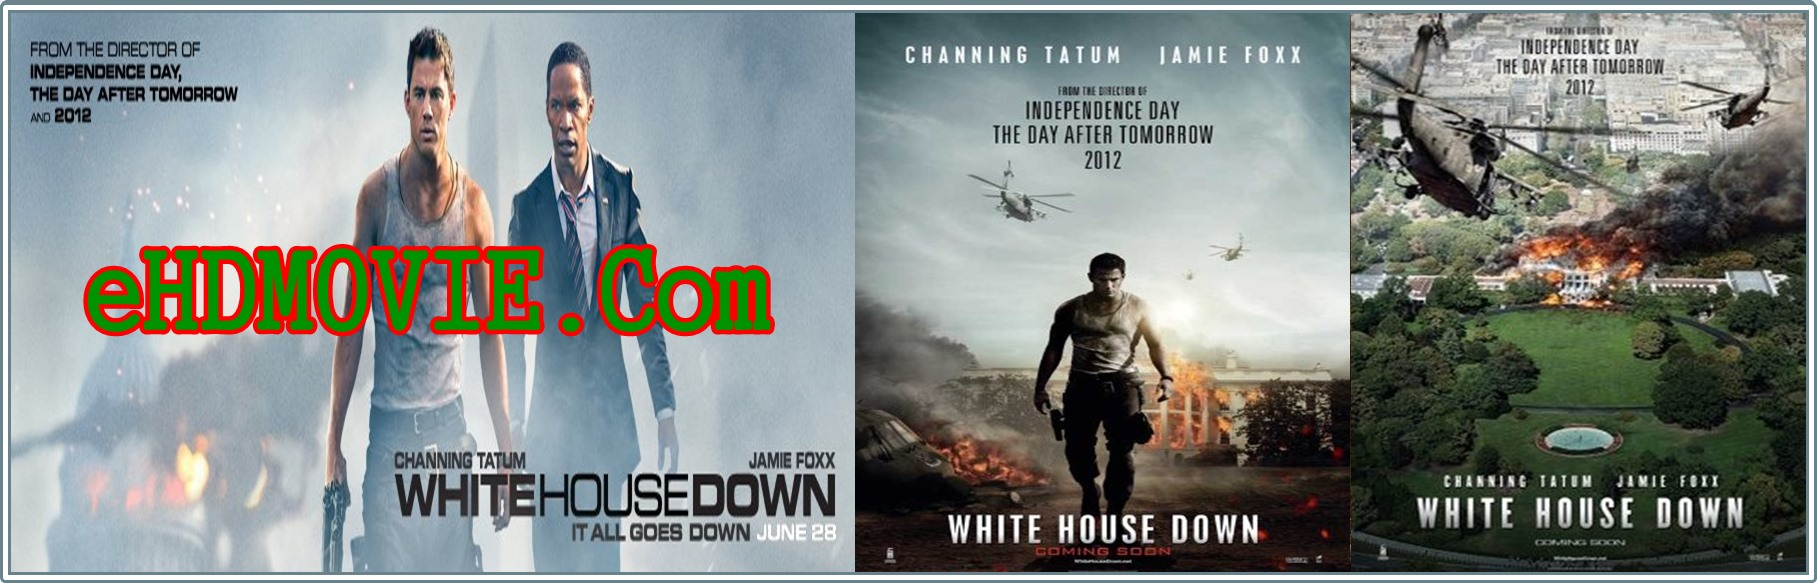 White House Down 2013 Full Movie Dual Audio [Hindi – English] 720p - HEVC ORG BRRip 550MB - 950MB ESubs Free Download